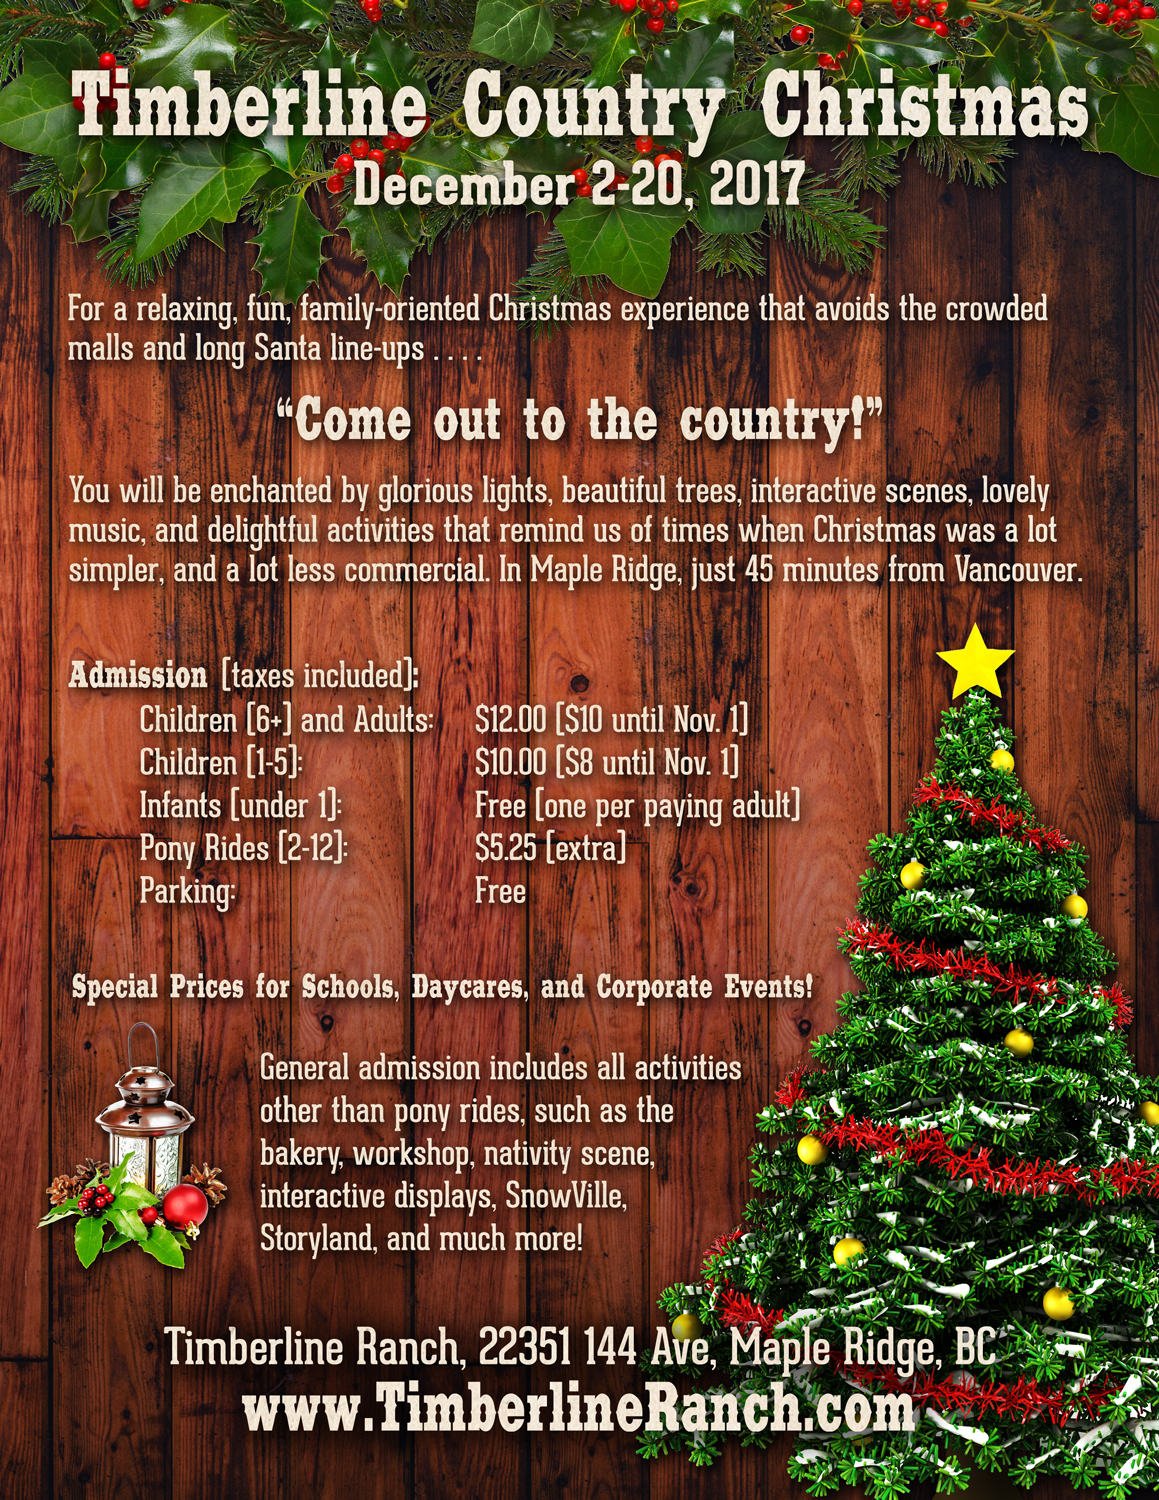 Leave The Busy City Behind And Enjoy Short Trip To A 73 Acre Horse Ranch In Maple Ridge That Has Been Transformed Into Christmas Wonderland